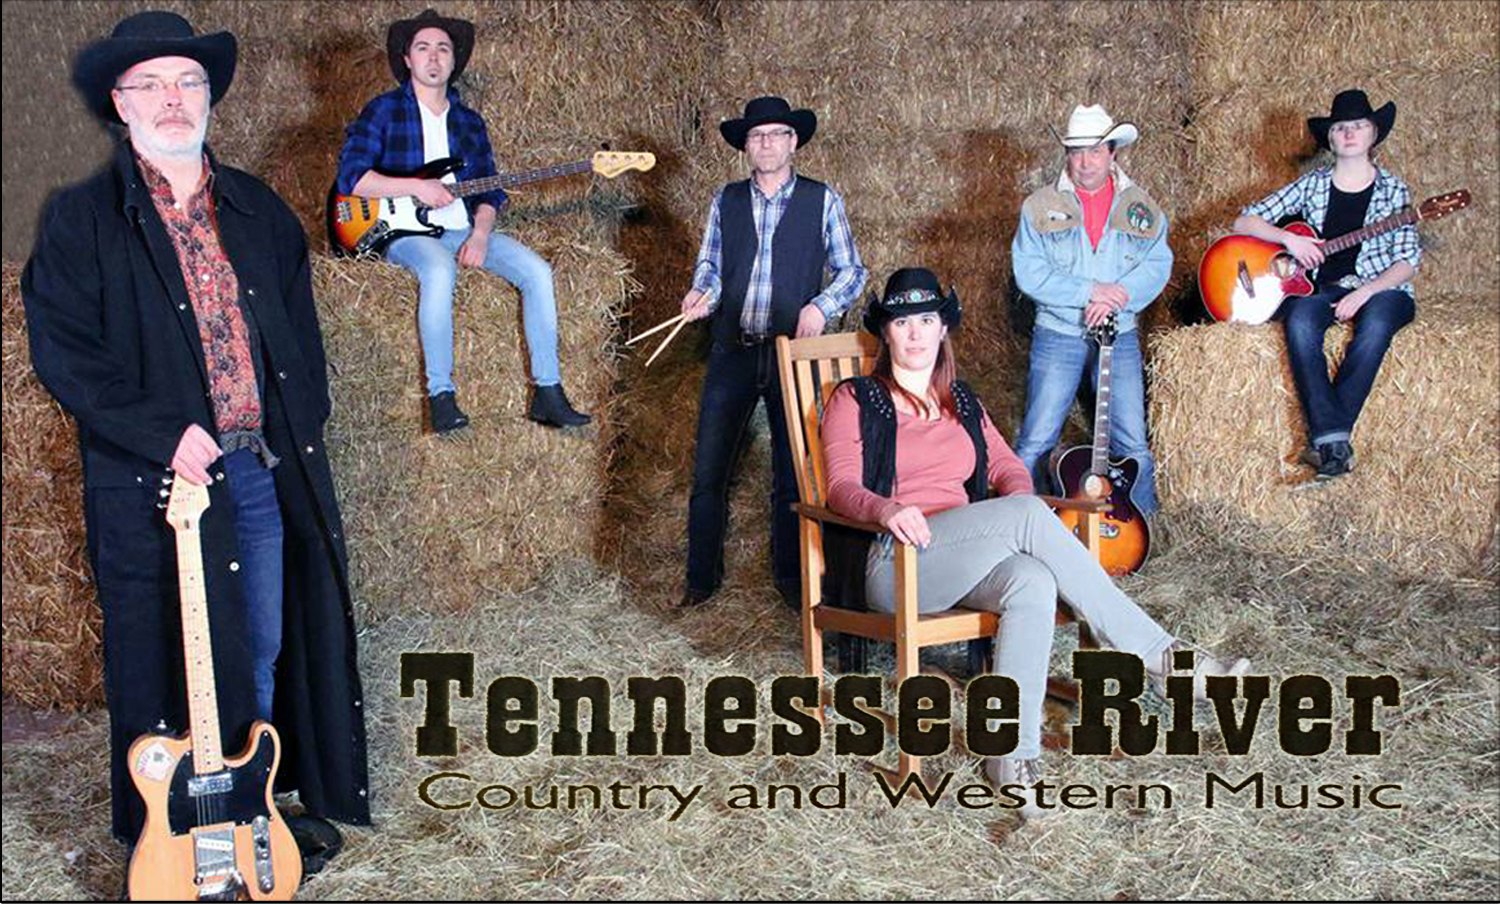 Tennessee River Band